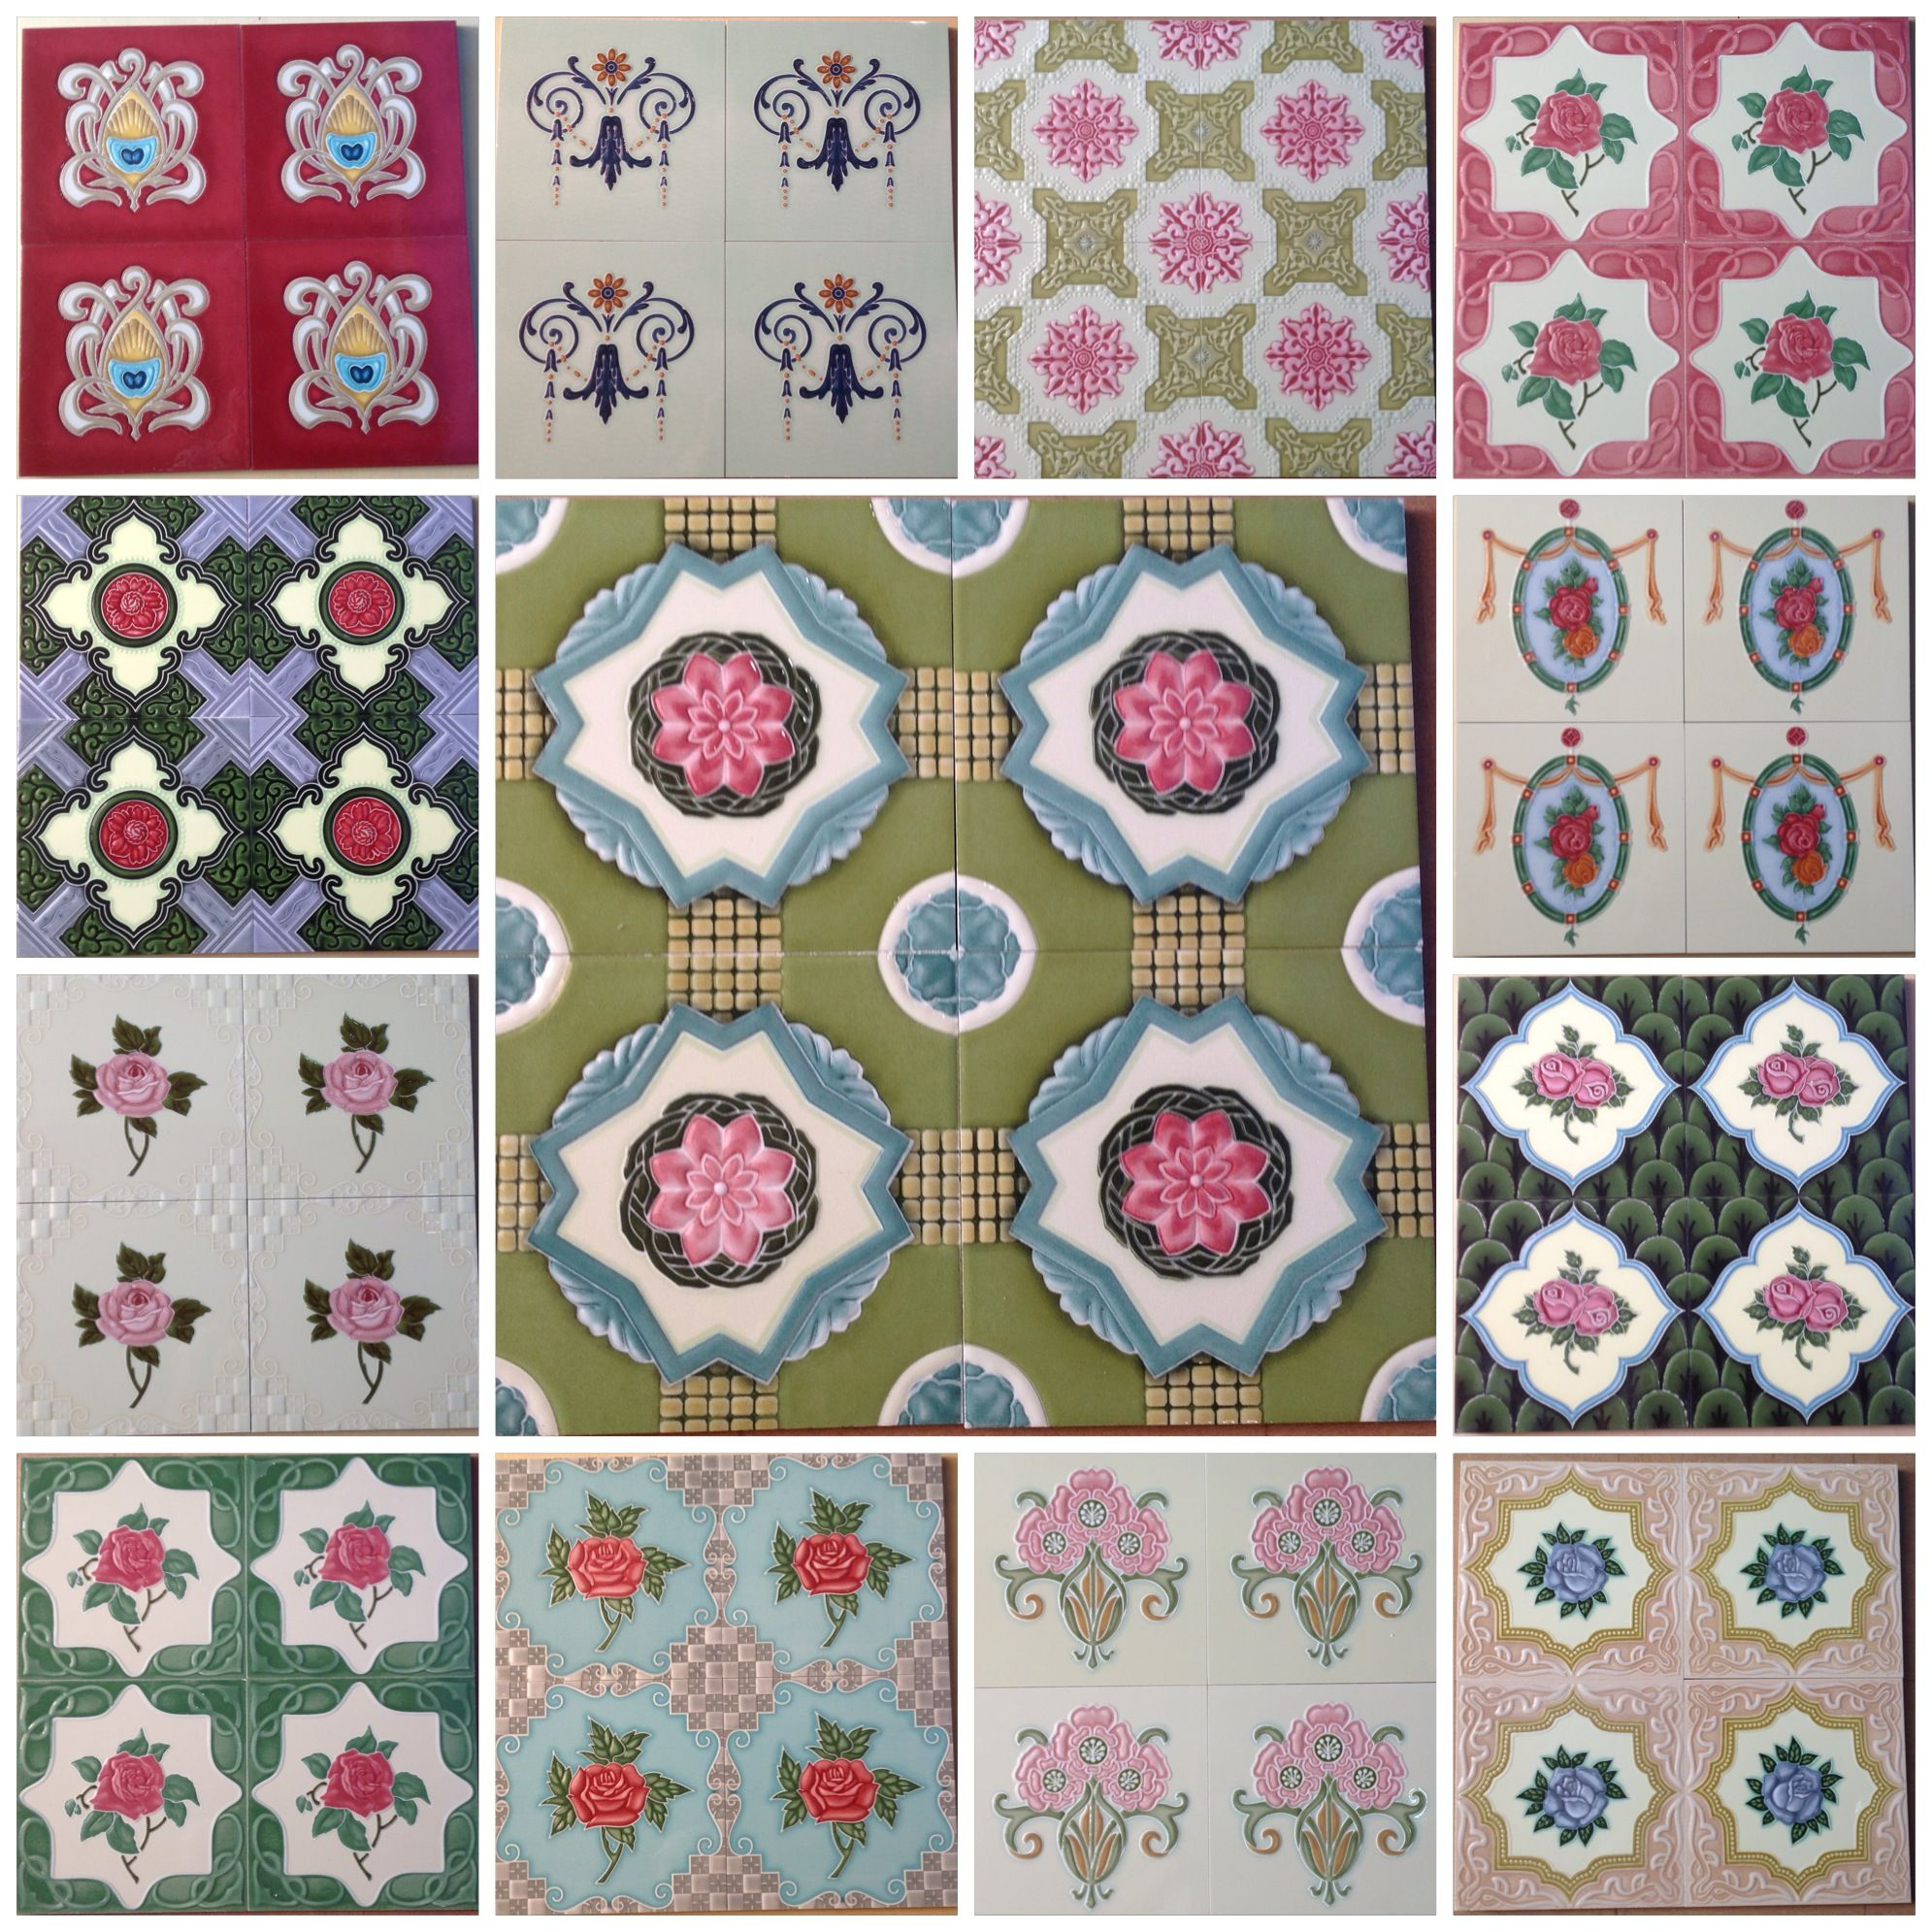 Customized Peranakan Tiles Home Tile Design Pattern Vintage Tile Victorian Tiles